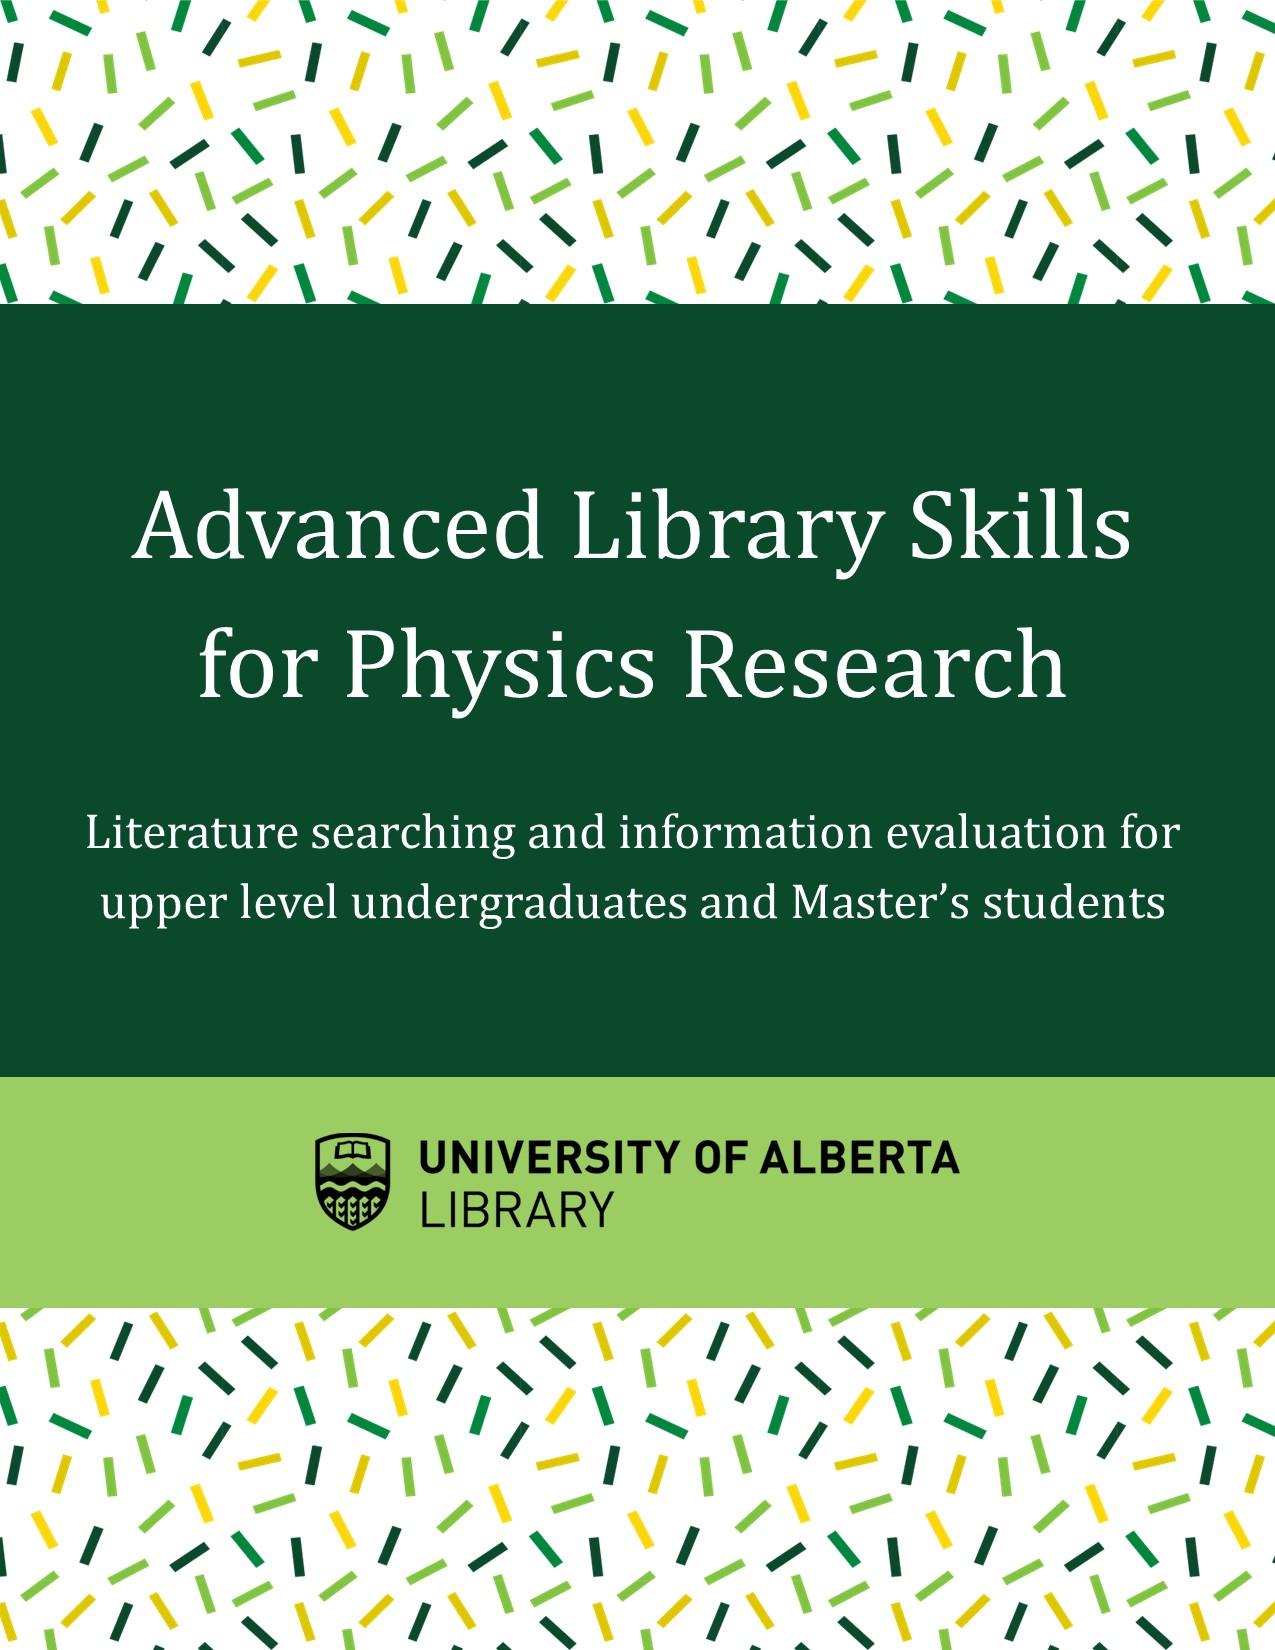 Cover image for Advanced Library Skills for Physics Research